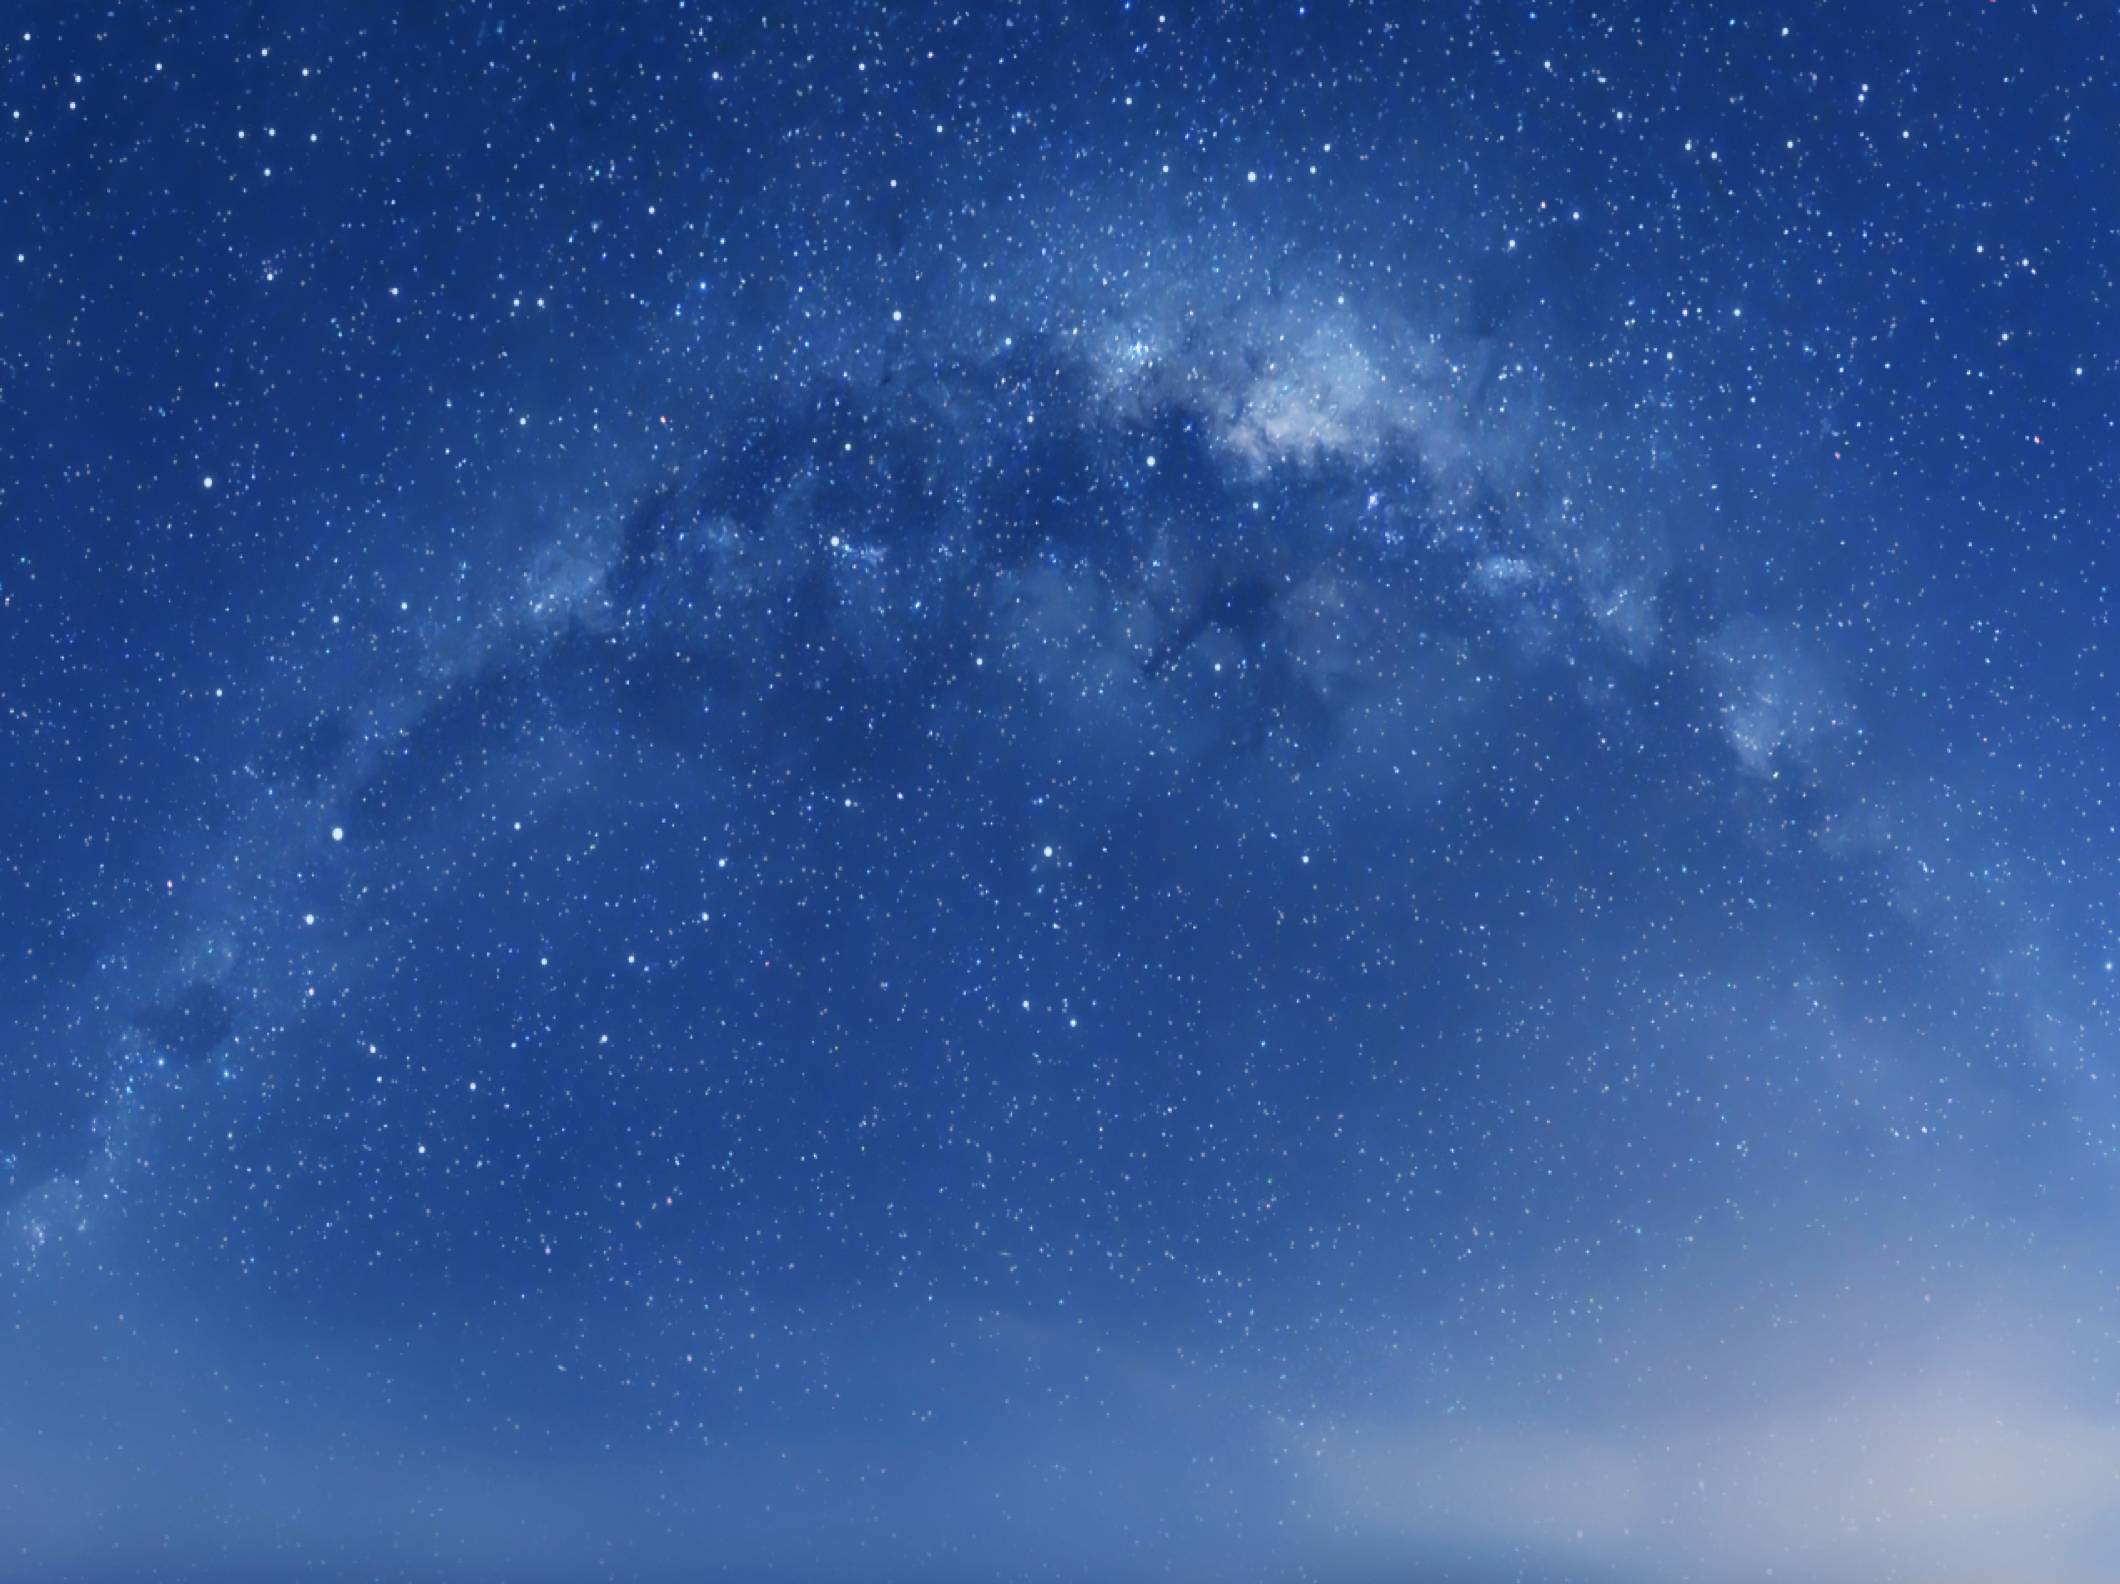 astro-image background.png